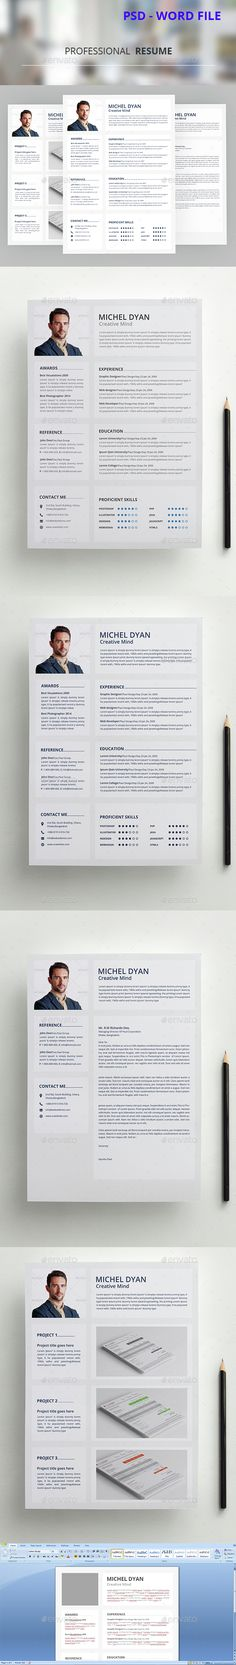 Resume | Free Cover Letter, Professional Resume Template And